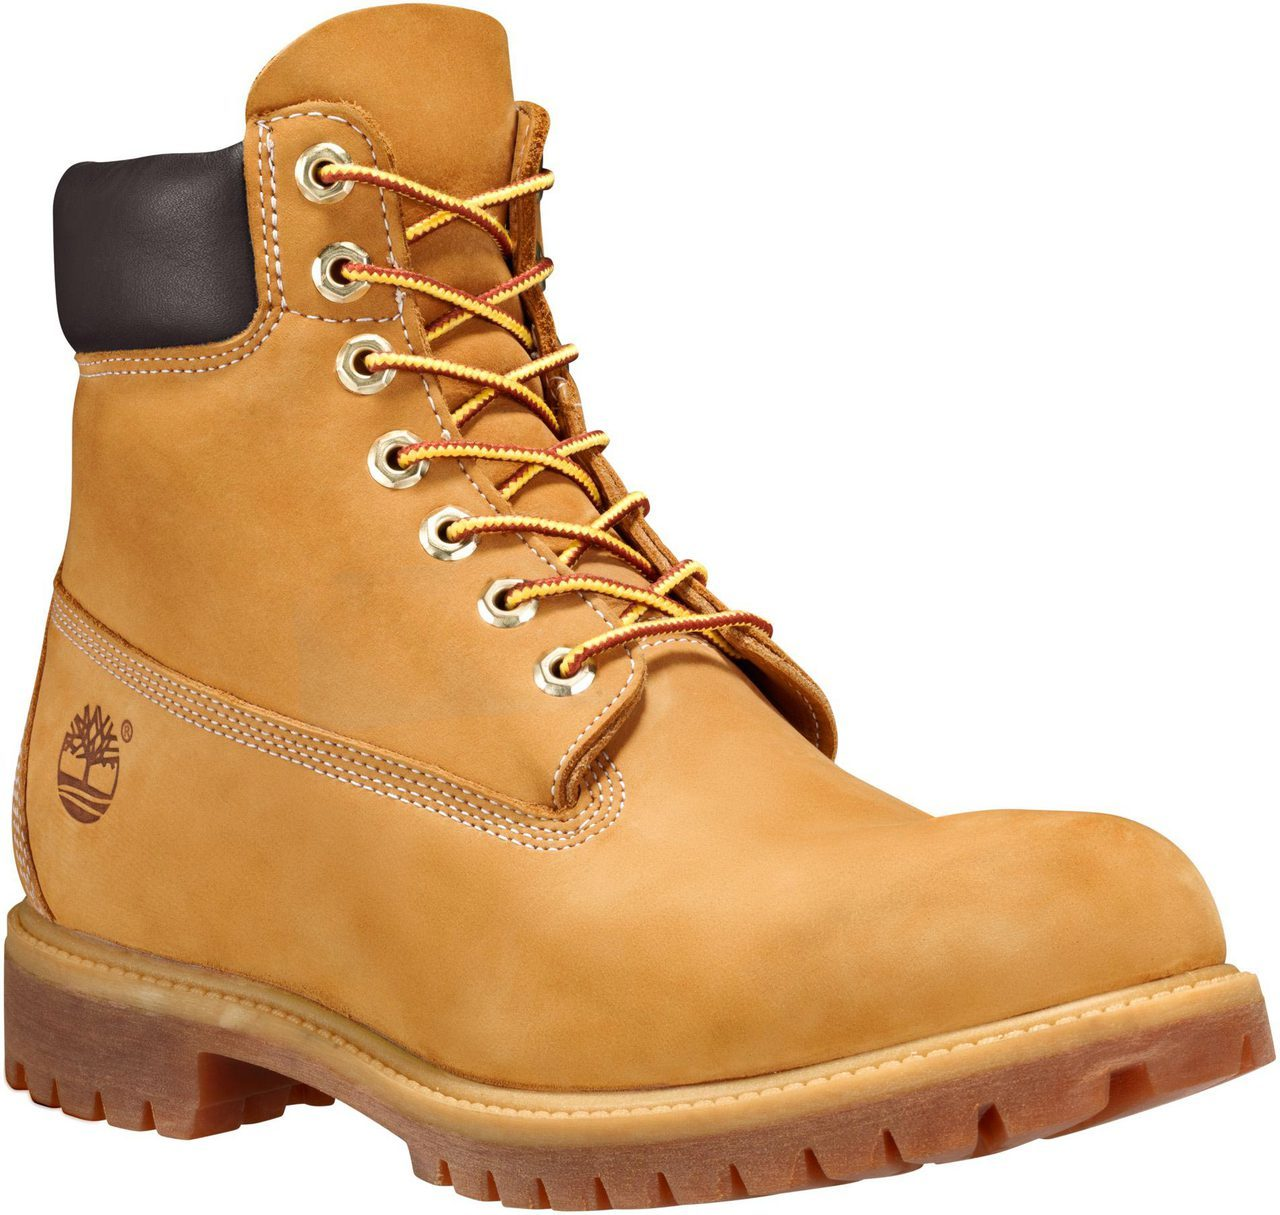 Timberland Men's 6-Inch Premium in Wheat Nubuck